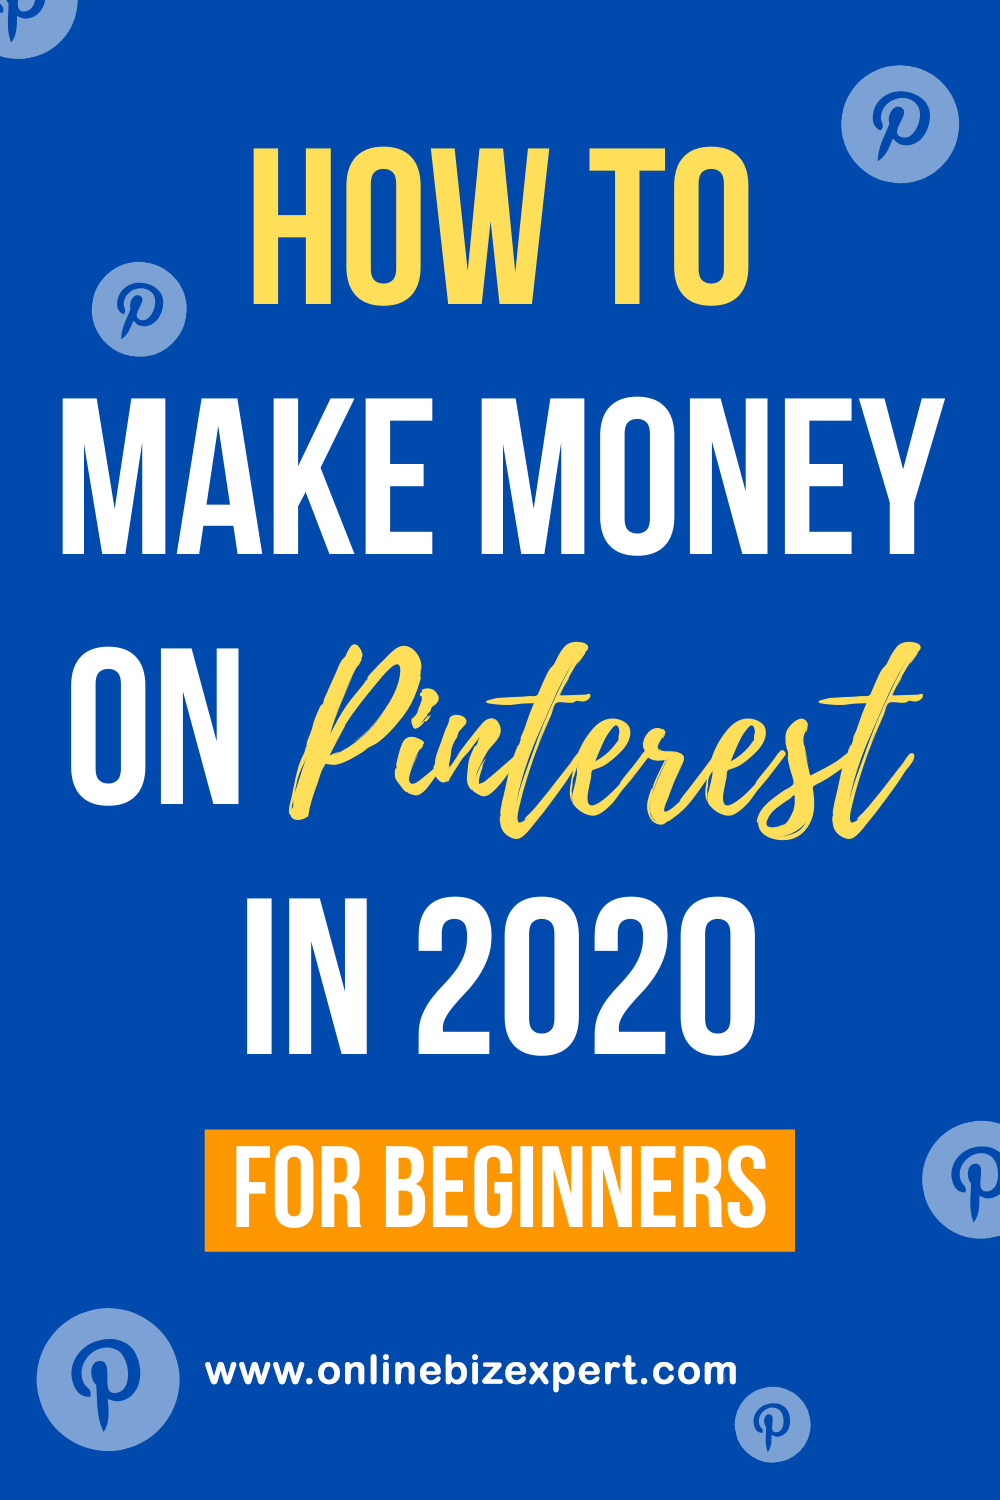 How to Make Money On Pinterest in 2020 For Beginners Guide